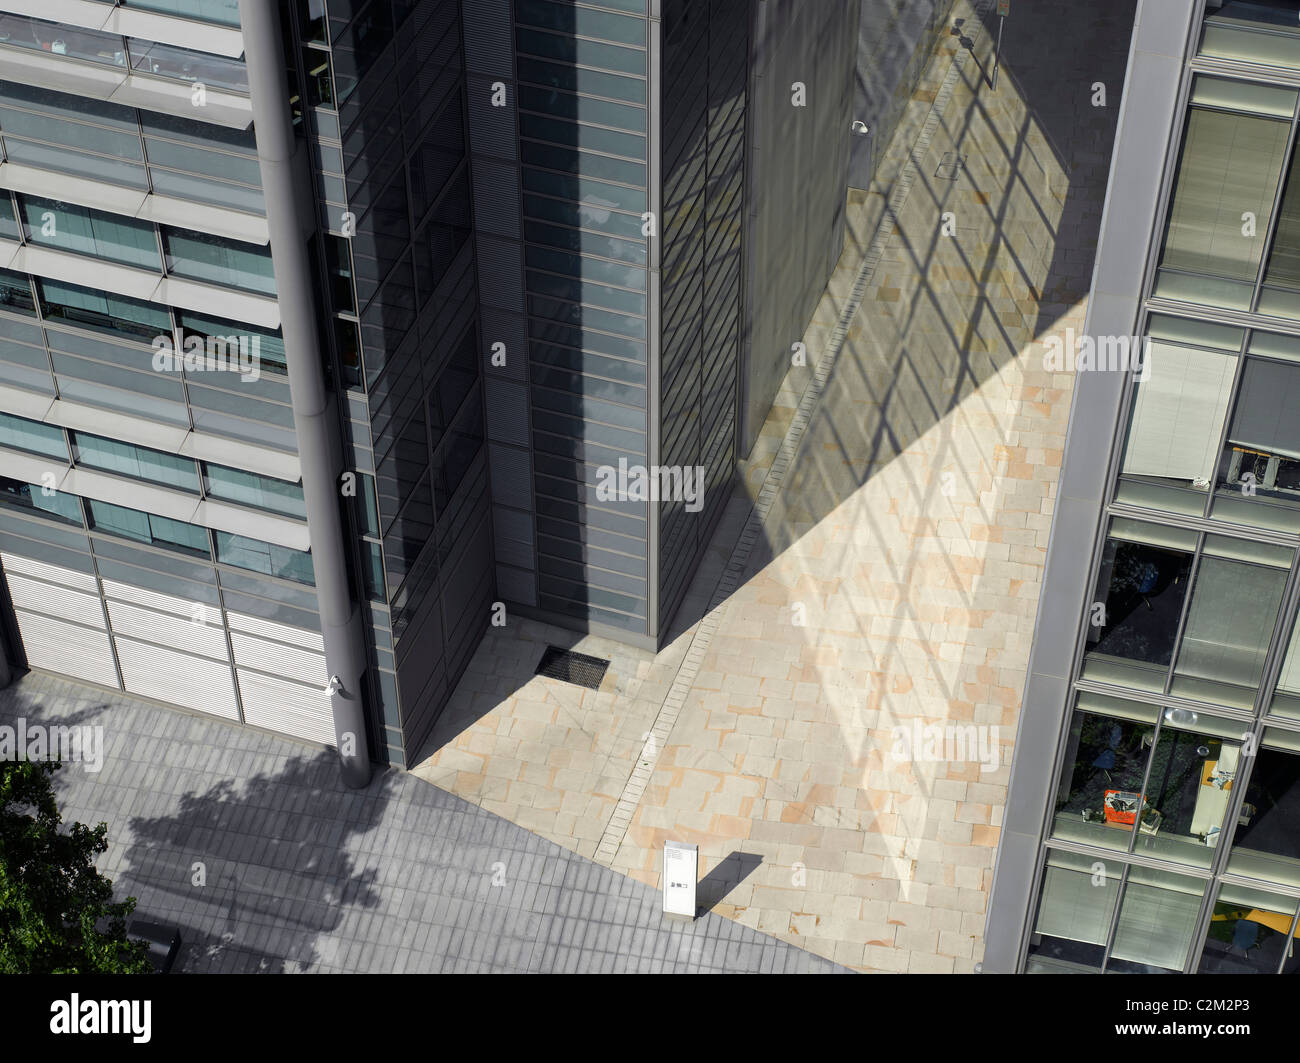 Modern townscape and reflections, City of London, Birdseye view - Stock Image